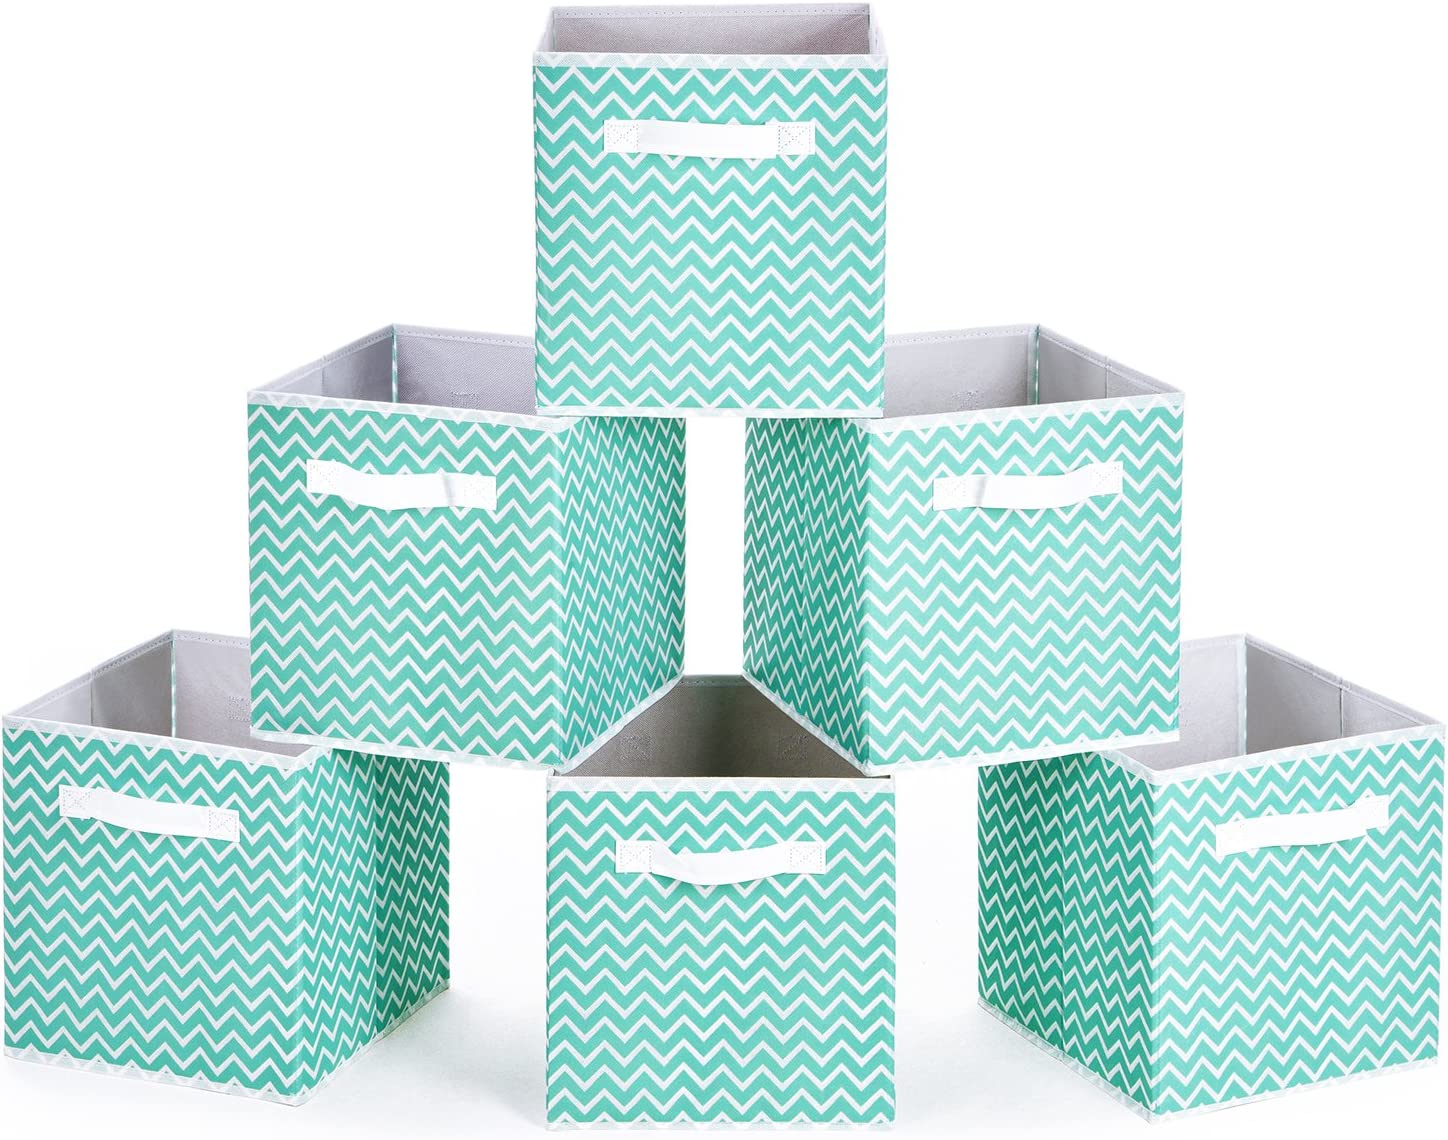 MaidMAX Collapsible Cloth Storage Bins Cubes Baskets Containers with Dual Handles for Home Closet Bedroom Drawers Organizers, Aqua Chevron, 10.5 x 10.5 x 11″, Set of 6